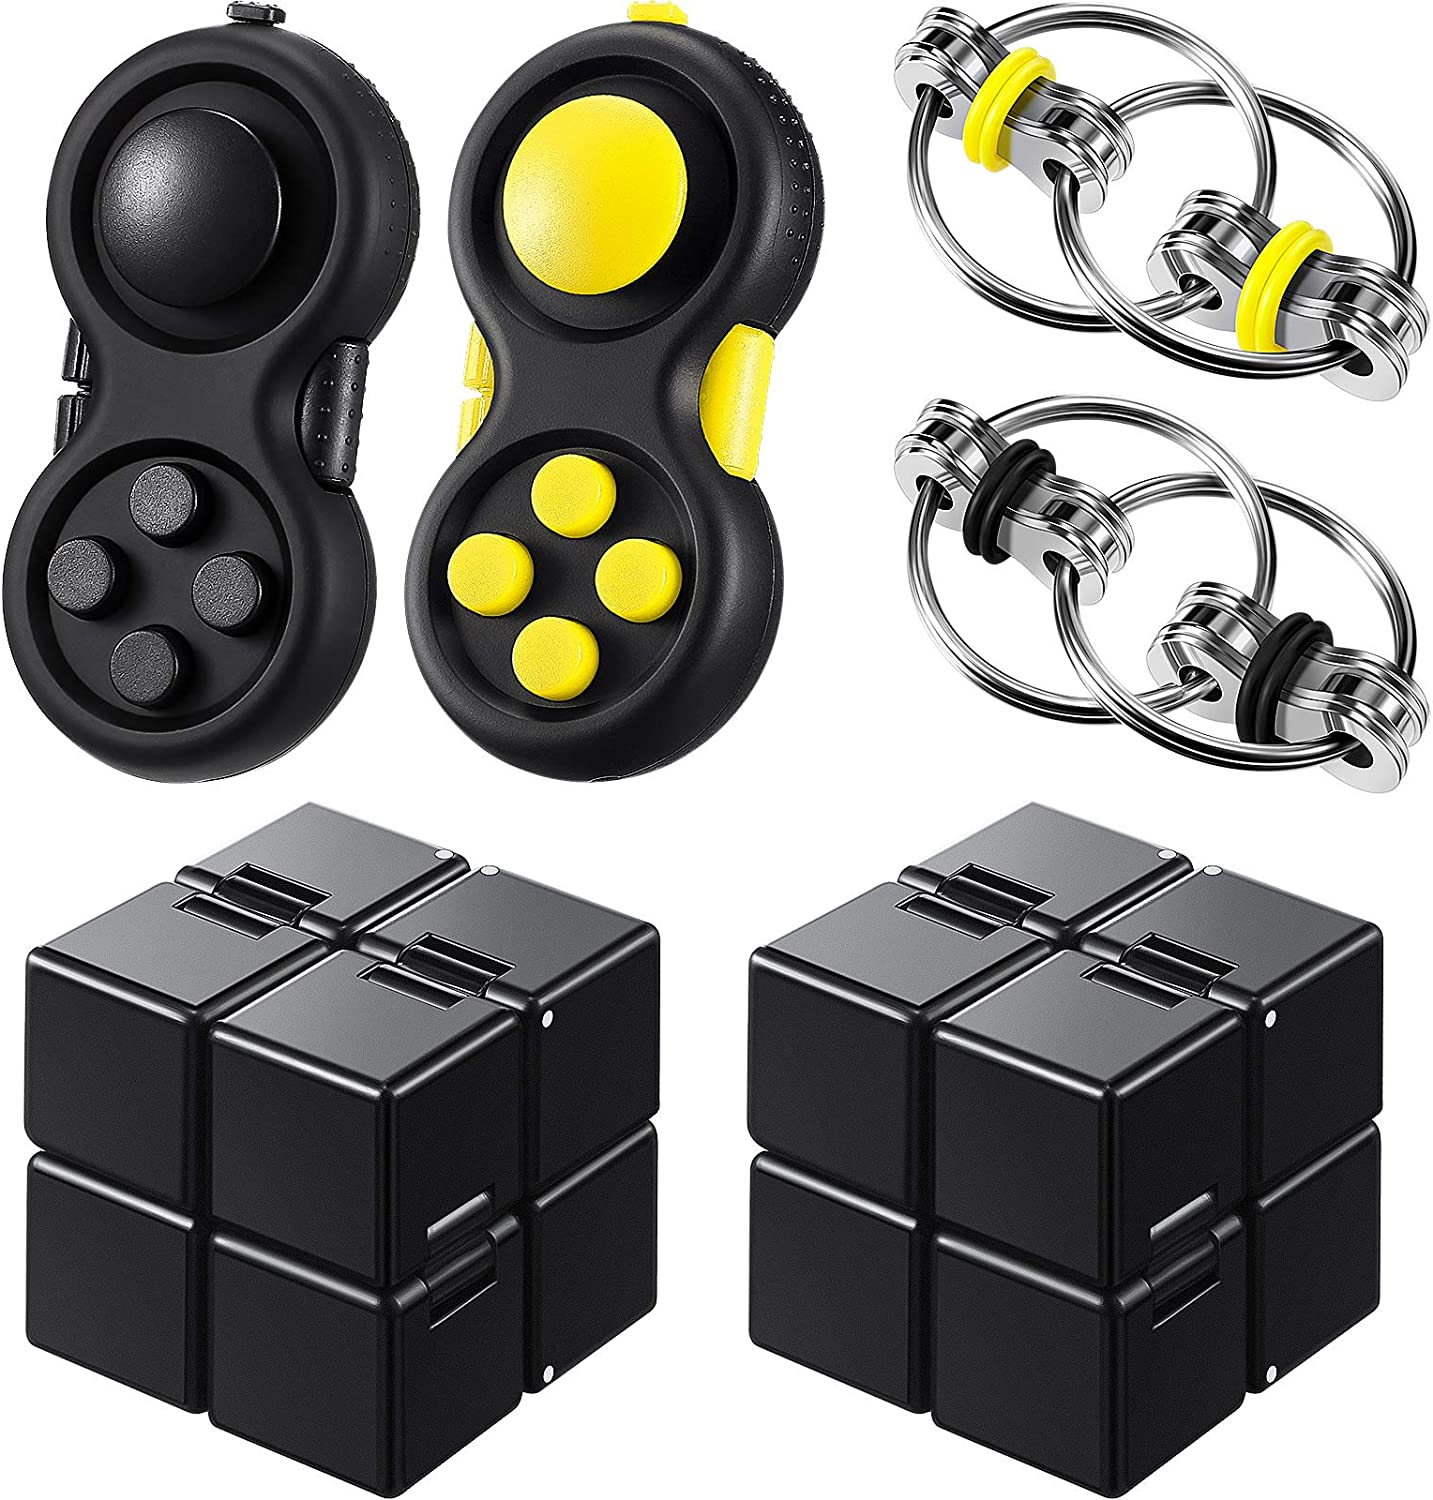 6 Pieces Mini Handheld Fidget New Free Shipping Set wholesale Including Toy Infinity